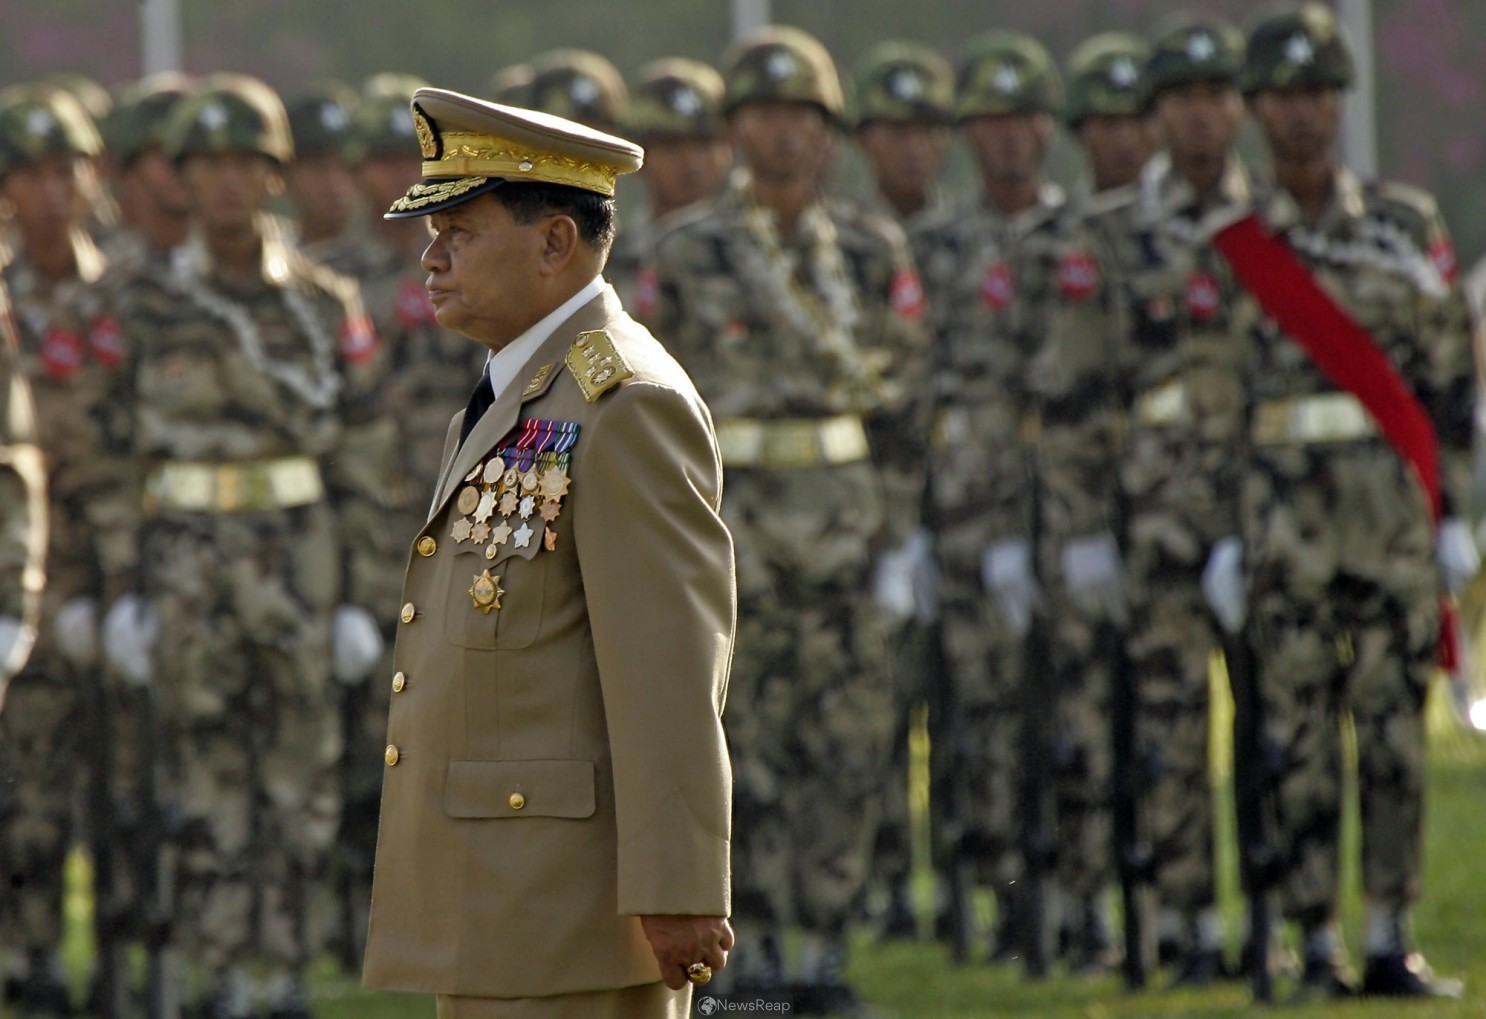 U.S. blacklists Myanmar police chief, army units over deadly crackdown